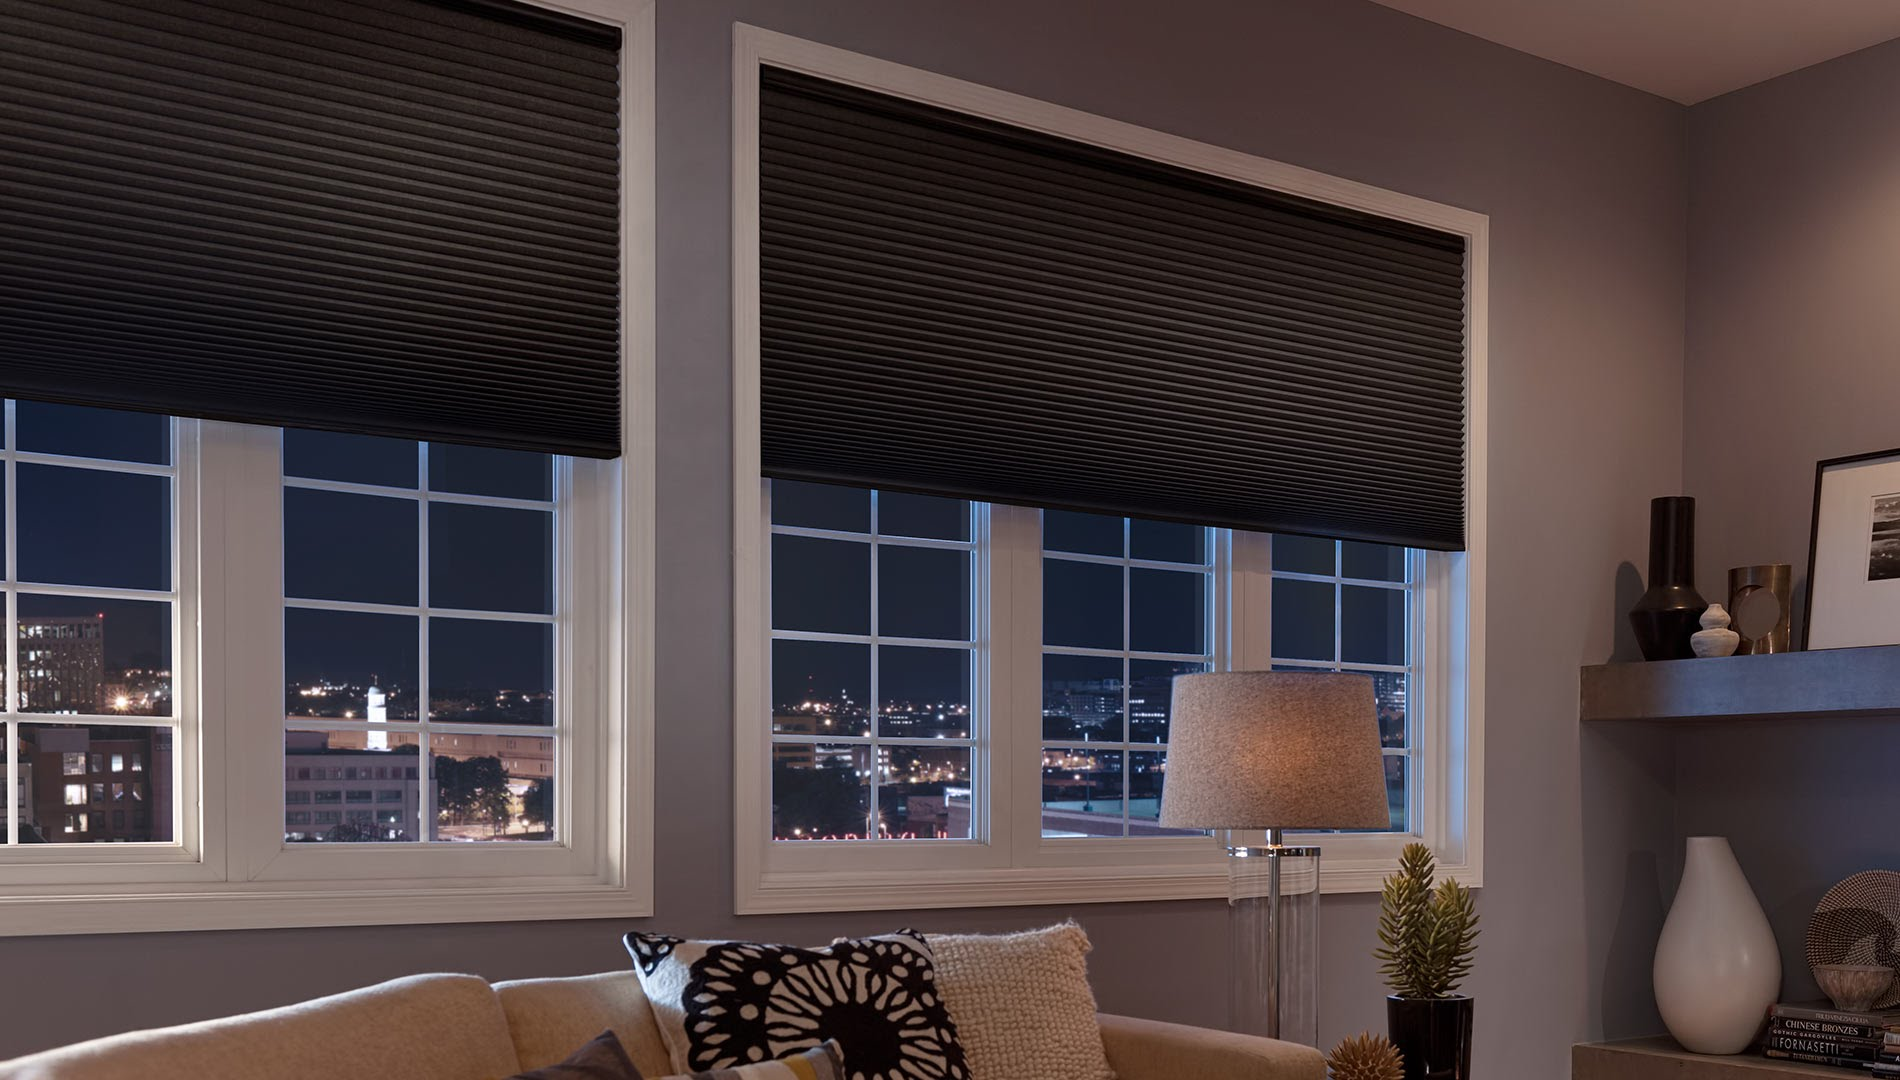 Dual Roller Blinds A Practical Alternative To Blackout Blinds